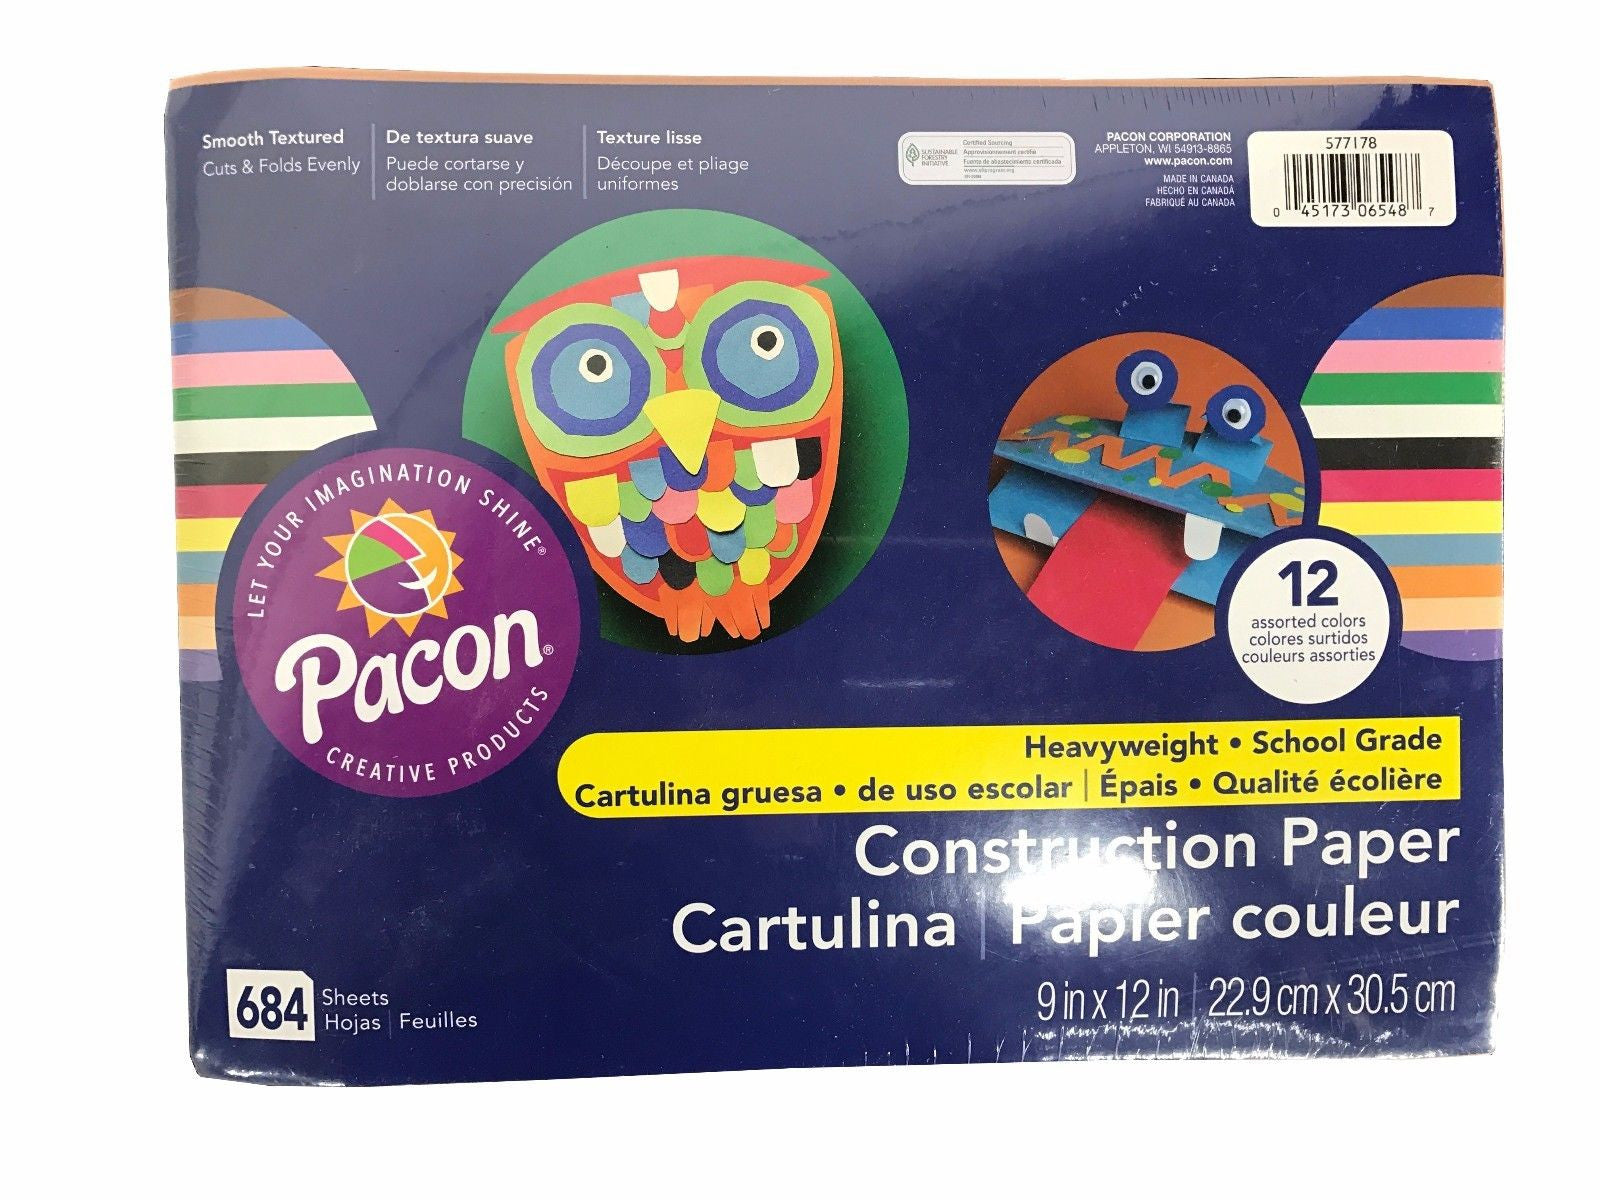 "Pacon 9"" x 12"" Construction Paper Heavyweight School Grade Assorted 684 Sheets"